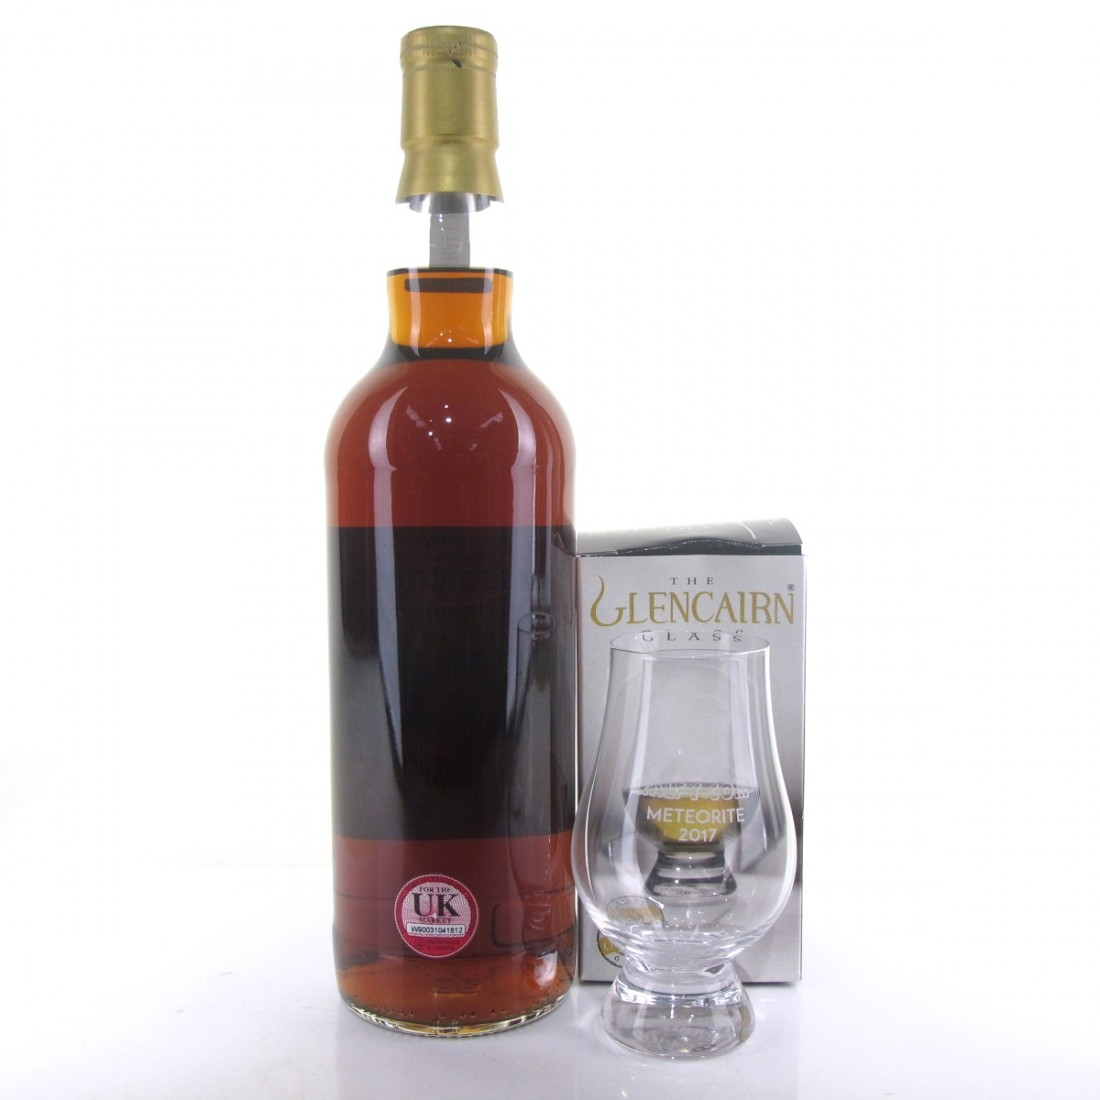 Port Charlotte Ralfy.com 12 Year Old Single Cask / Including Glass